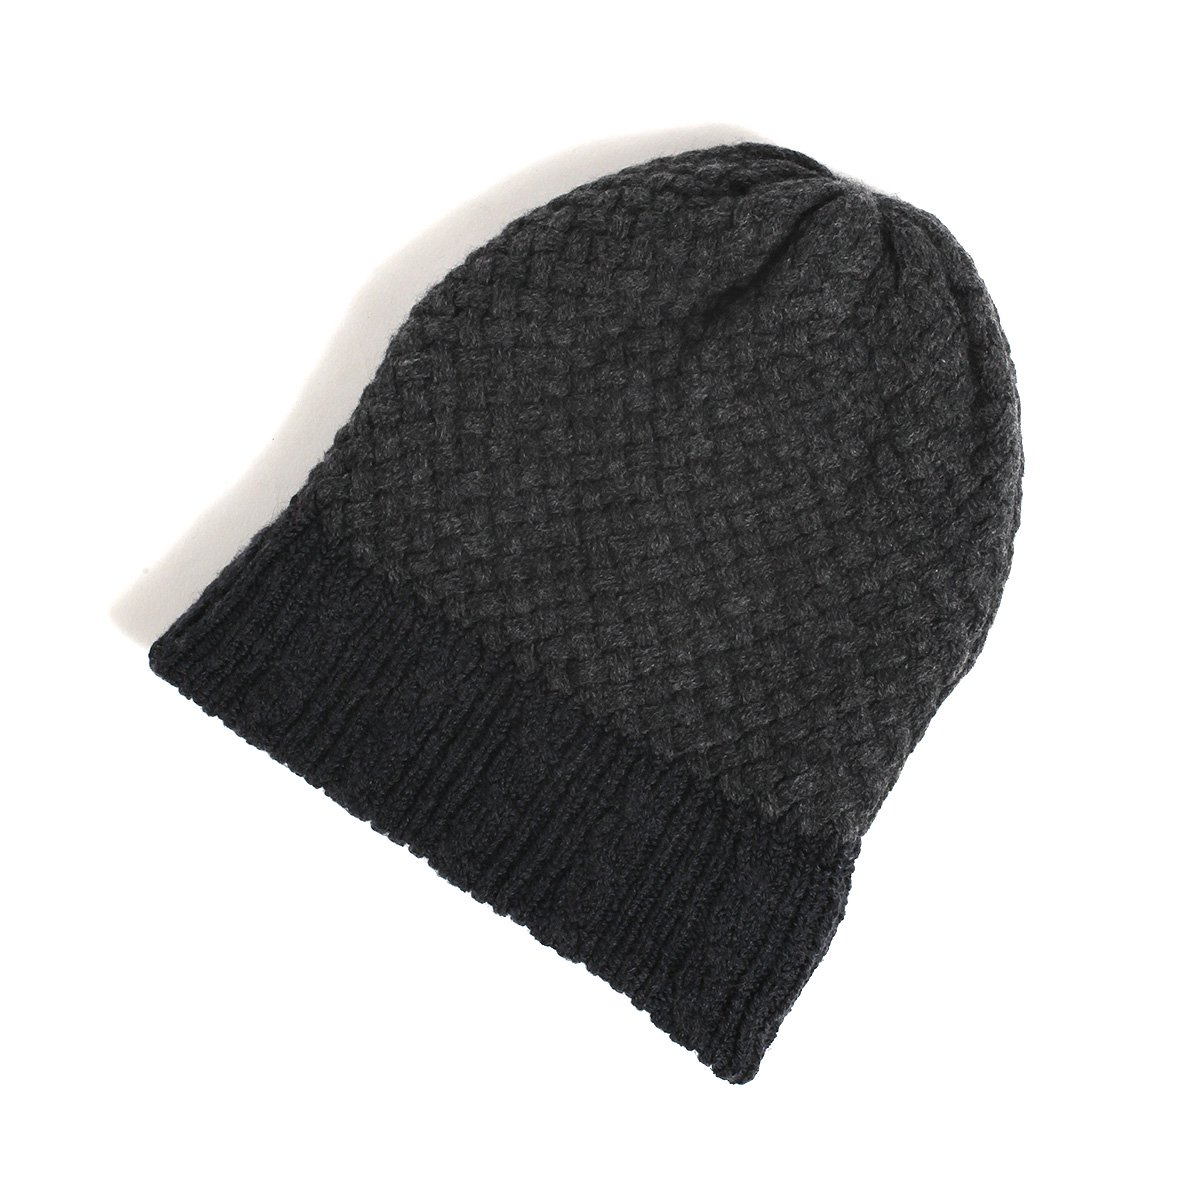 LIGHT-WEIGHT REVERSIBLE KNITCAP TYPE C 詳細画像6